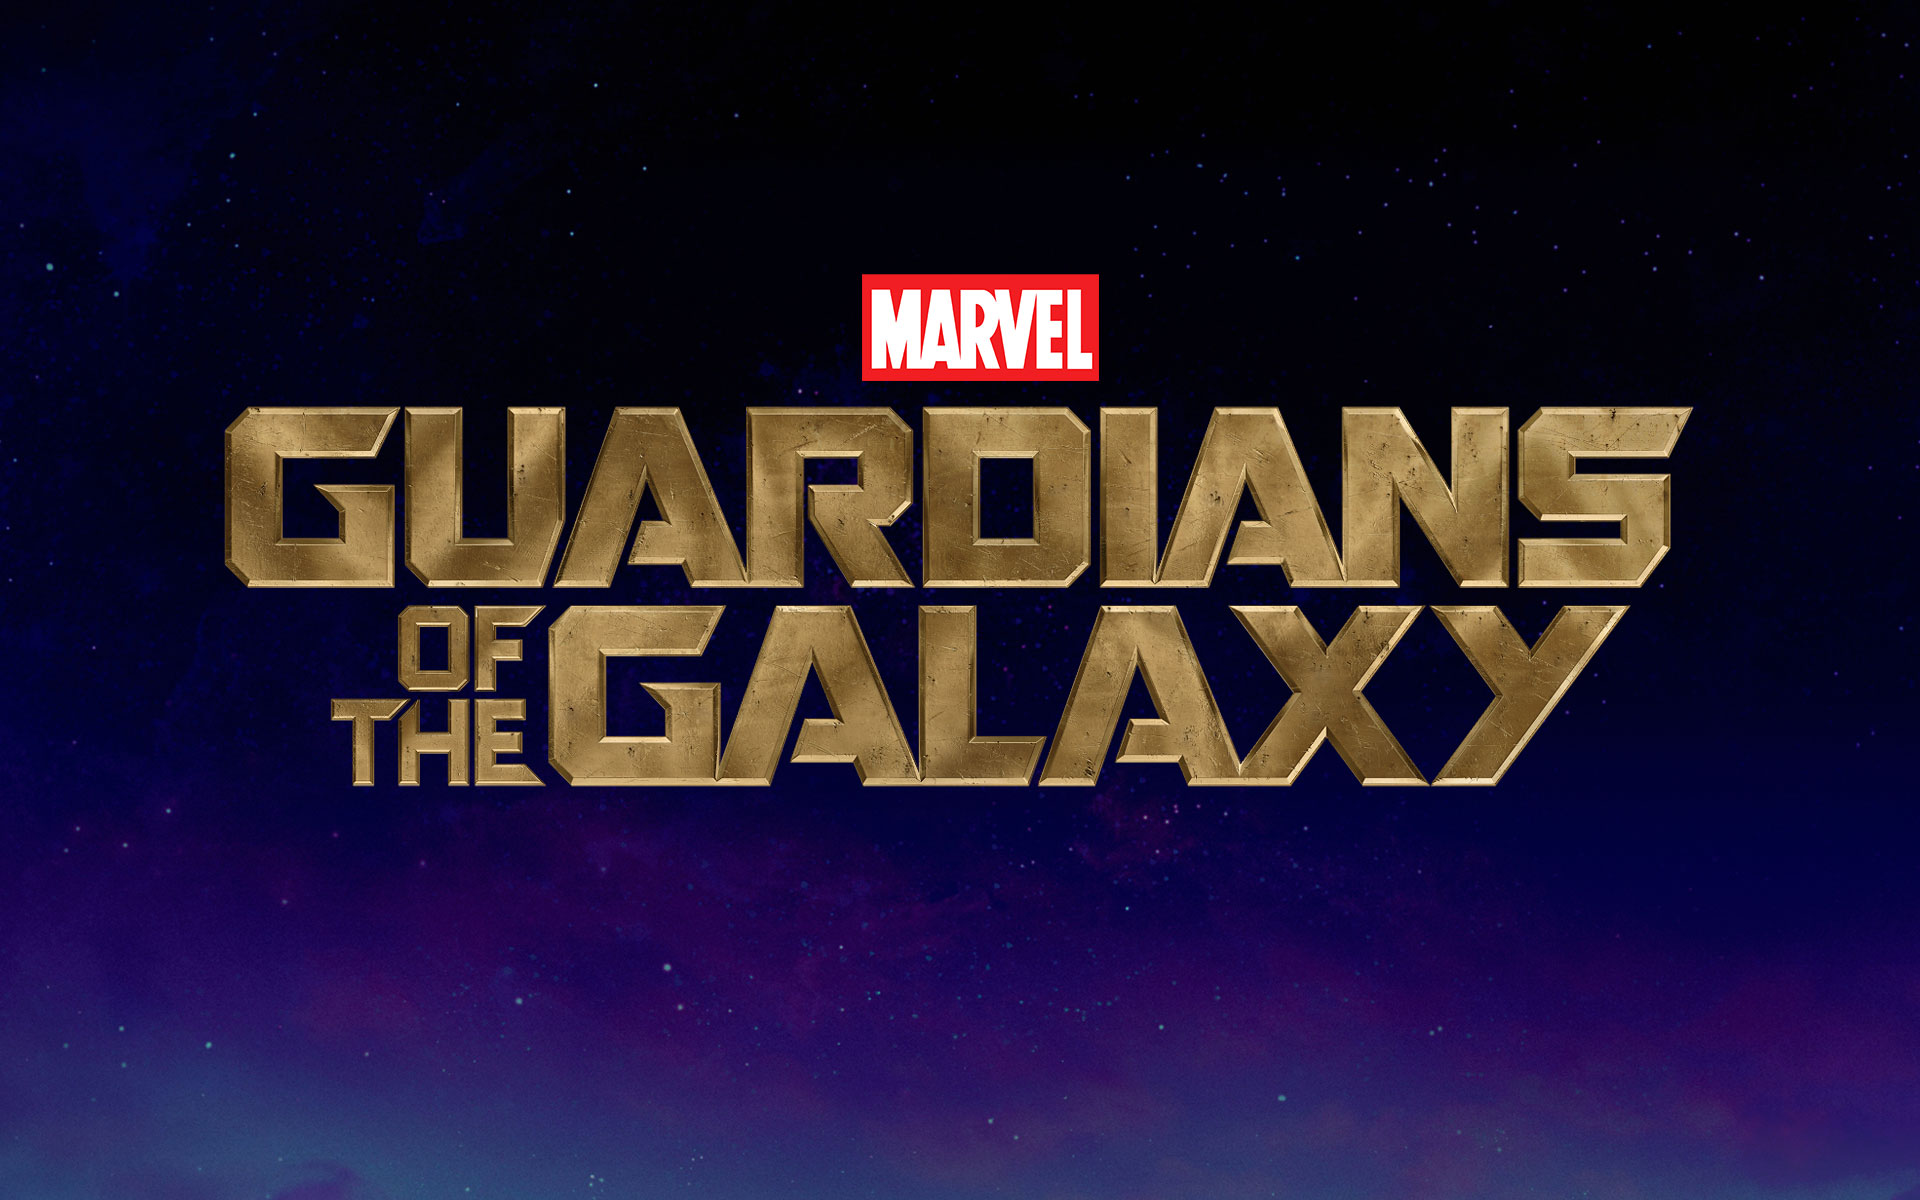 guardians-of-the-galaxy-movie-logo-1920x12001